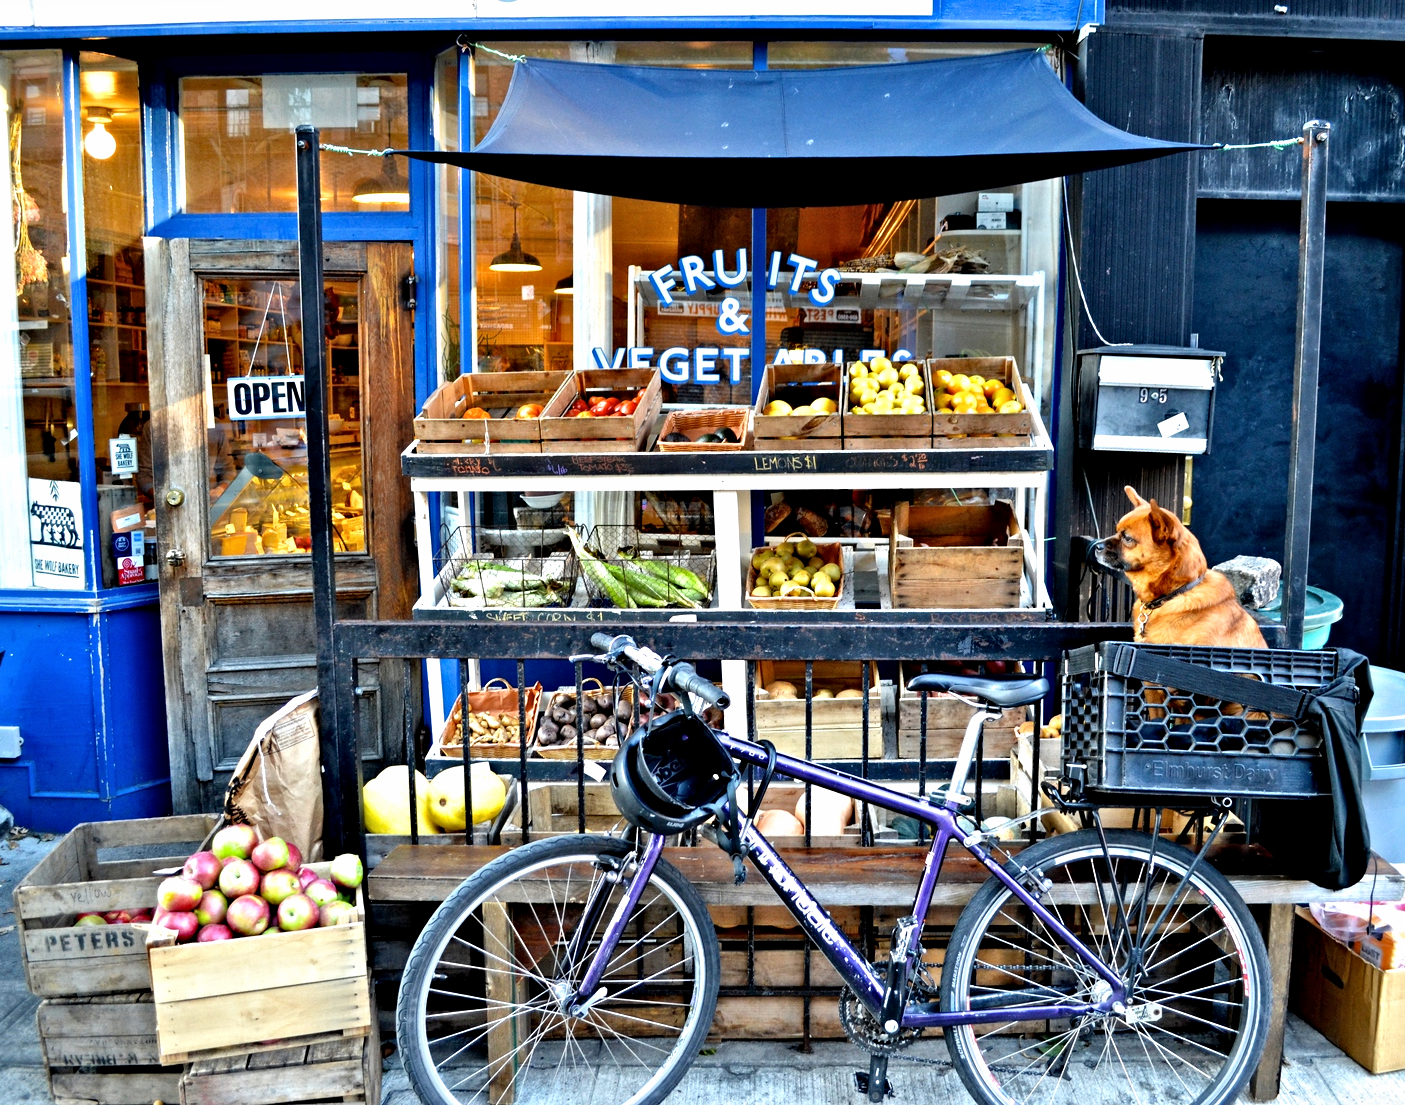 {Cute pup waiting for his owner outside a really cool food shop}